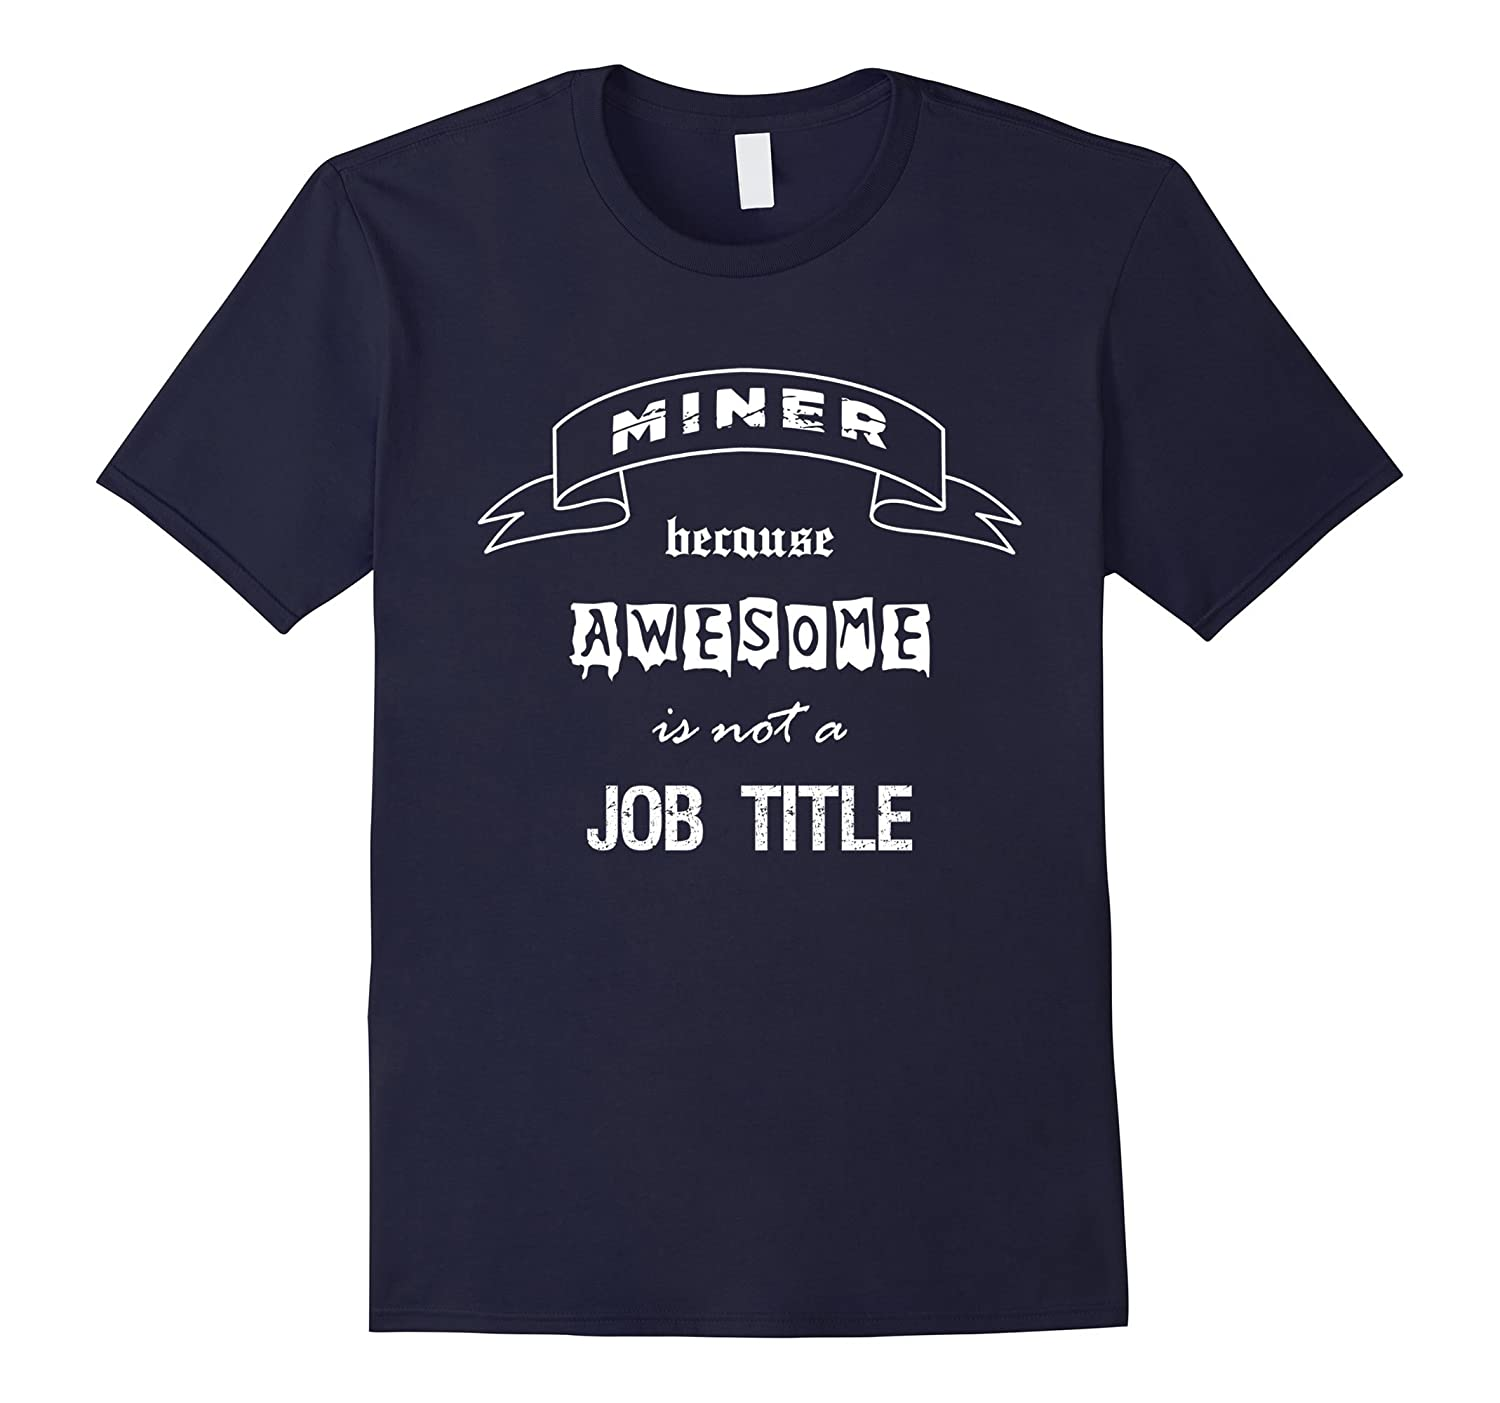 Miner Because Awesome Is Not A Job Title Funny T Shirt-TD